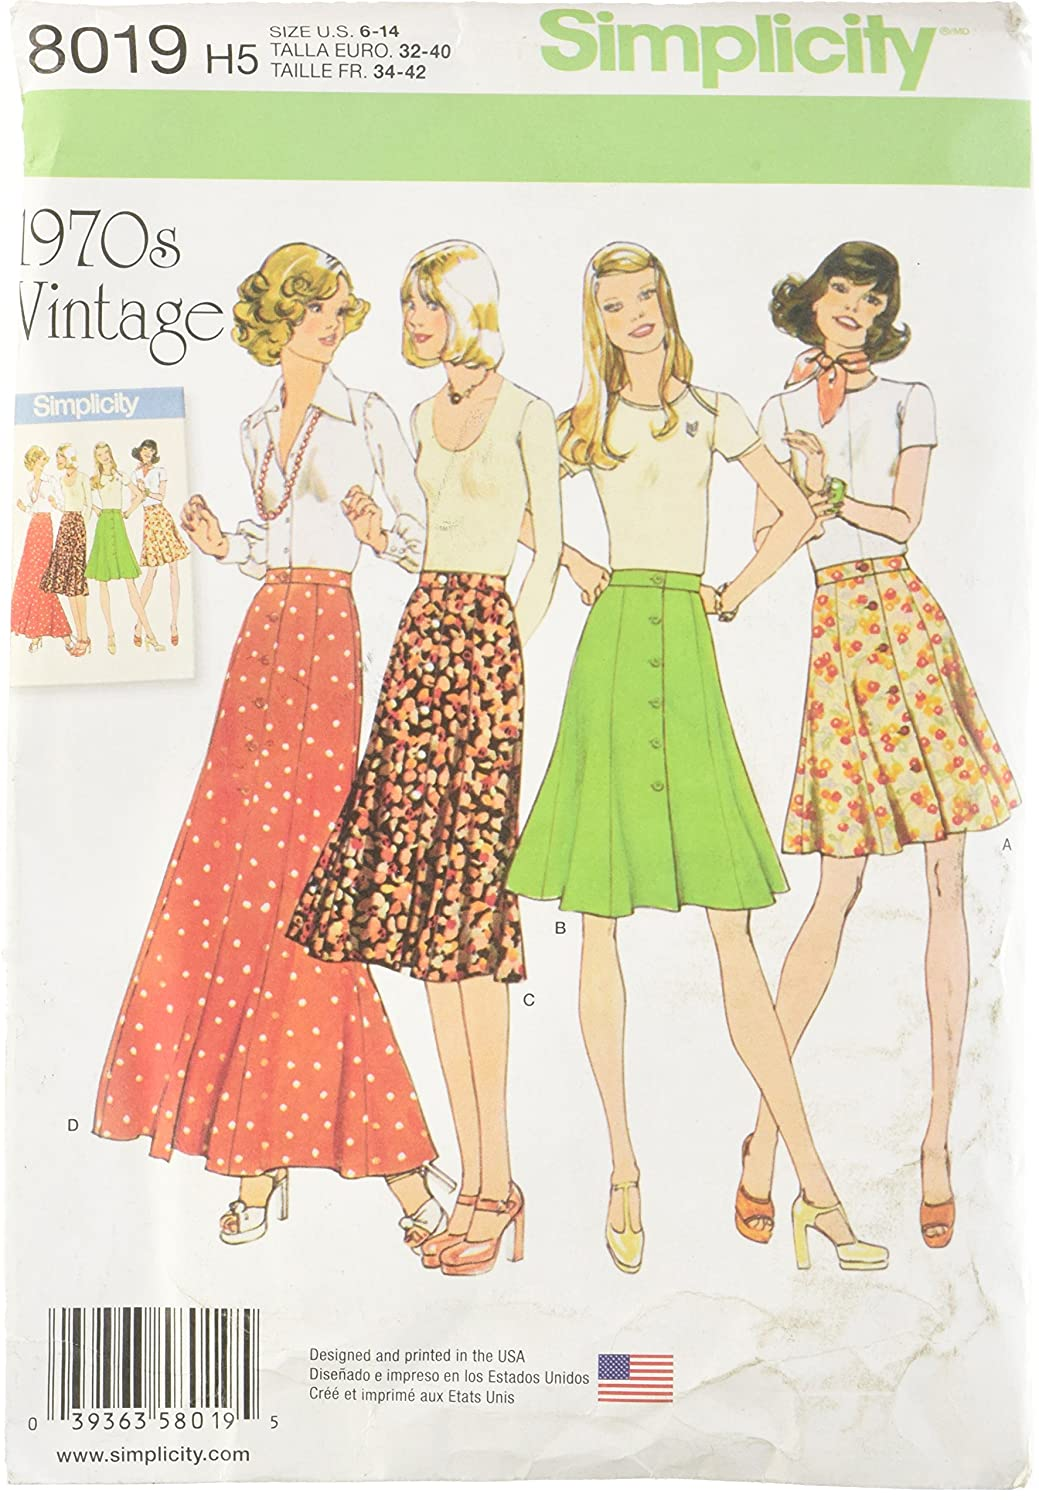 Simplicity Creative Patterns US8019H5 Misses' Vintage 1970's Skirts, Size: H5 (6-8-10-12-14) OUTLOOK GROUP CORP